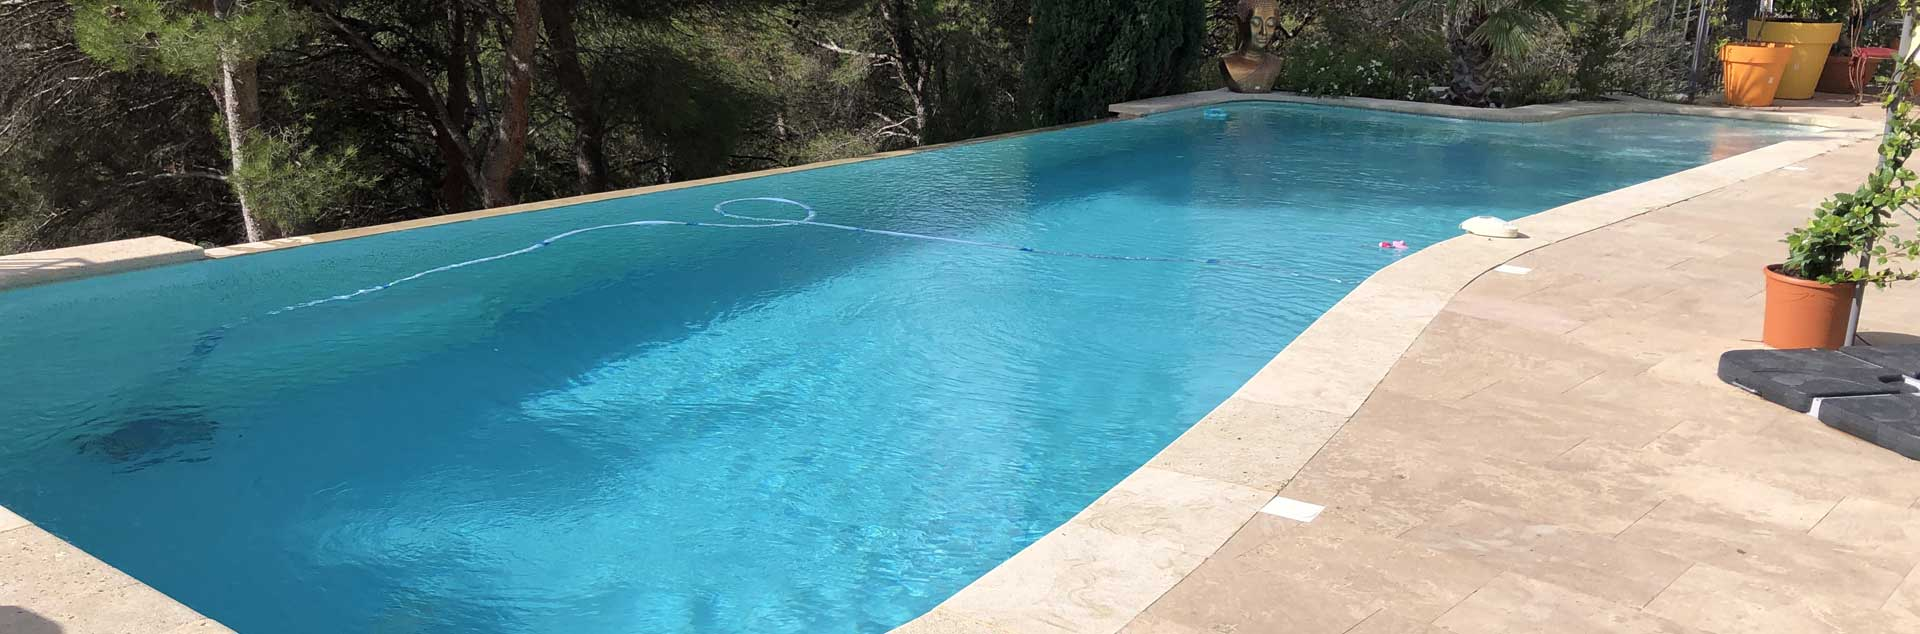 couloir de nage, piscine traditionnelles